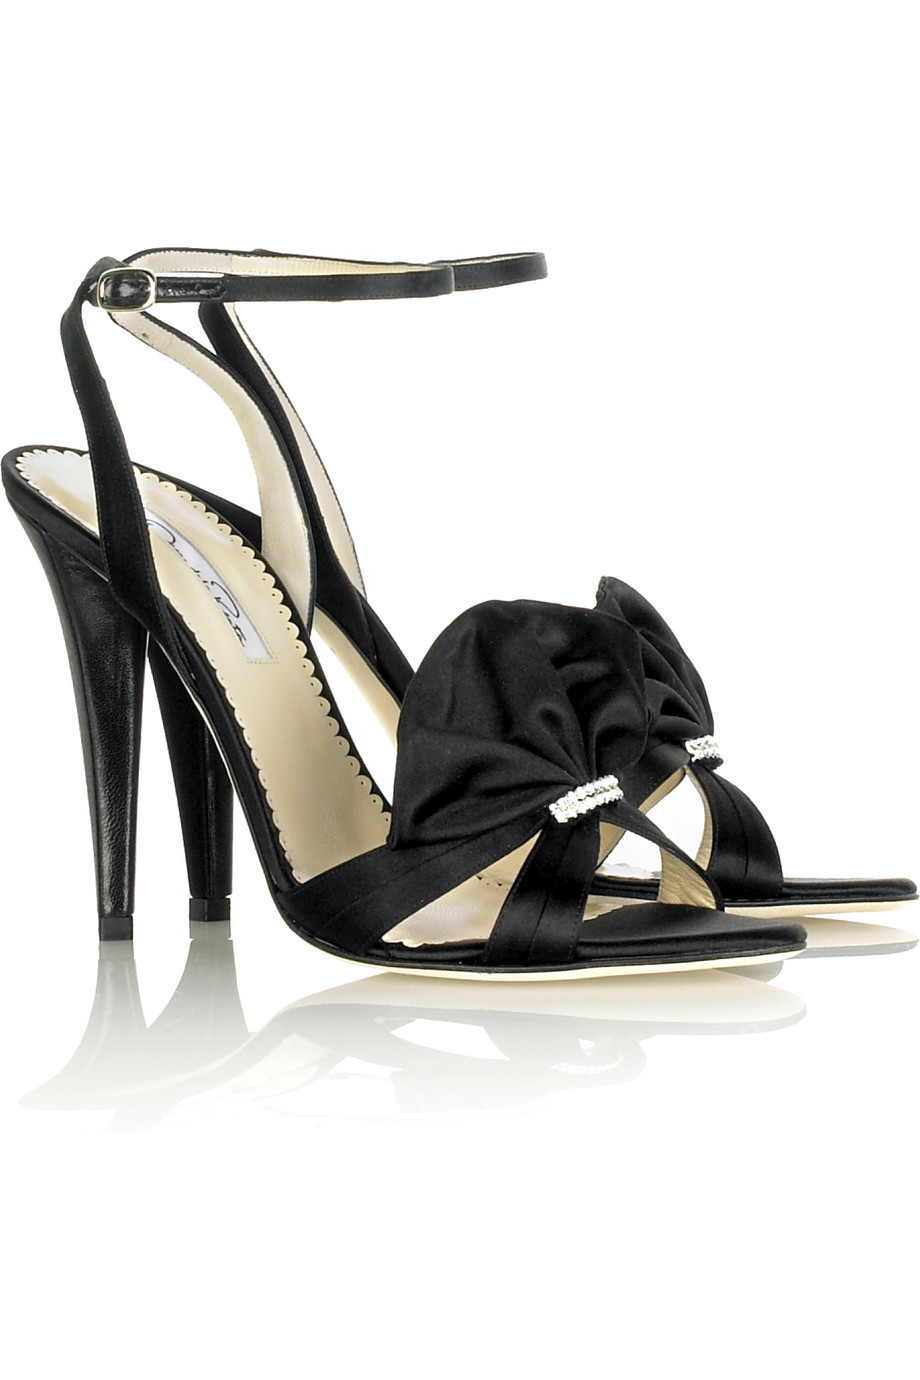 Oscar de la Renta Fan satin sandals